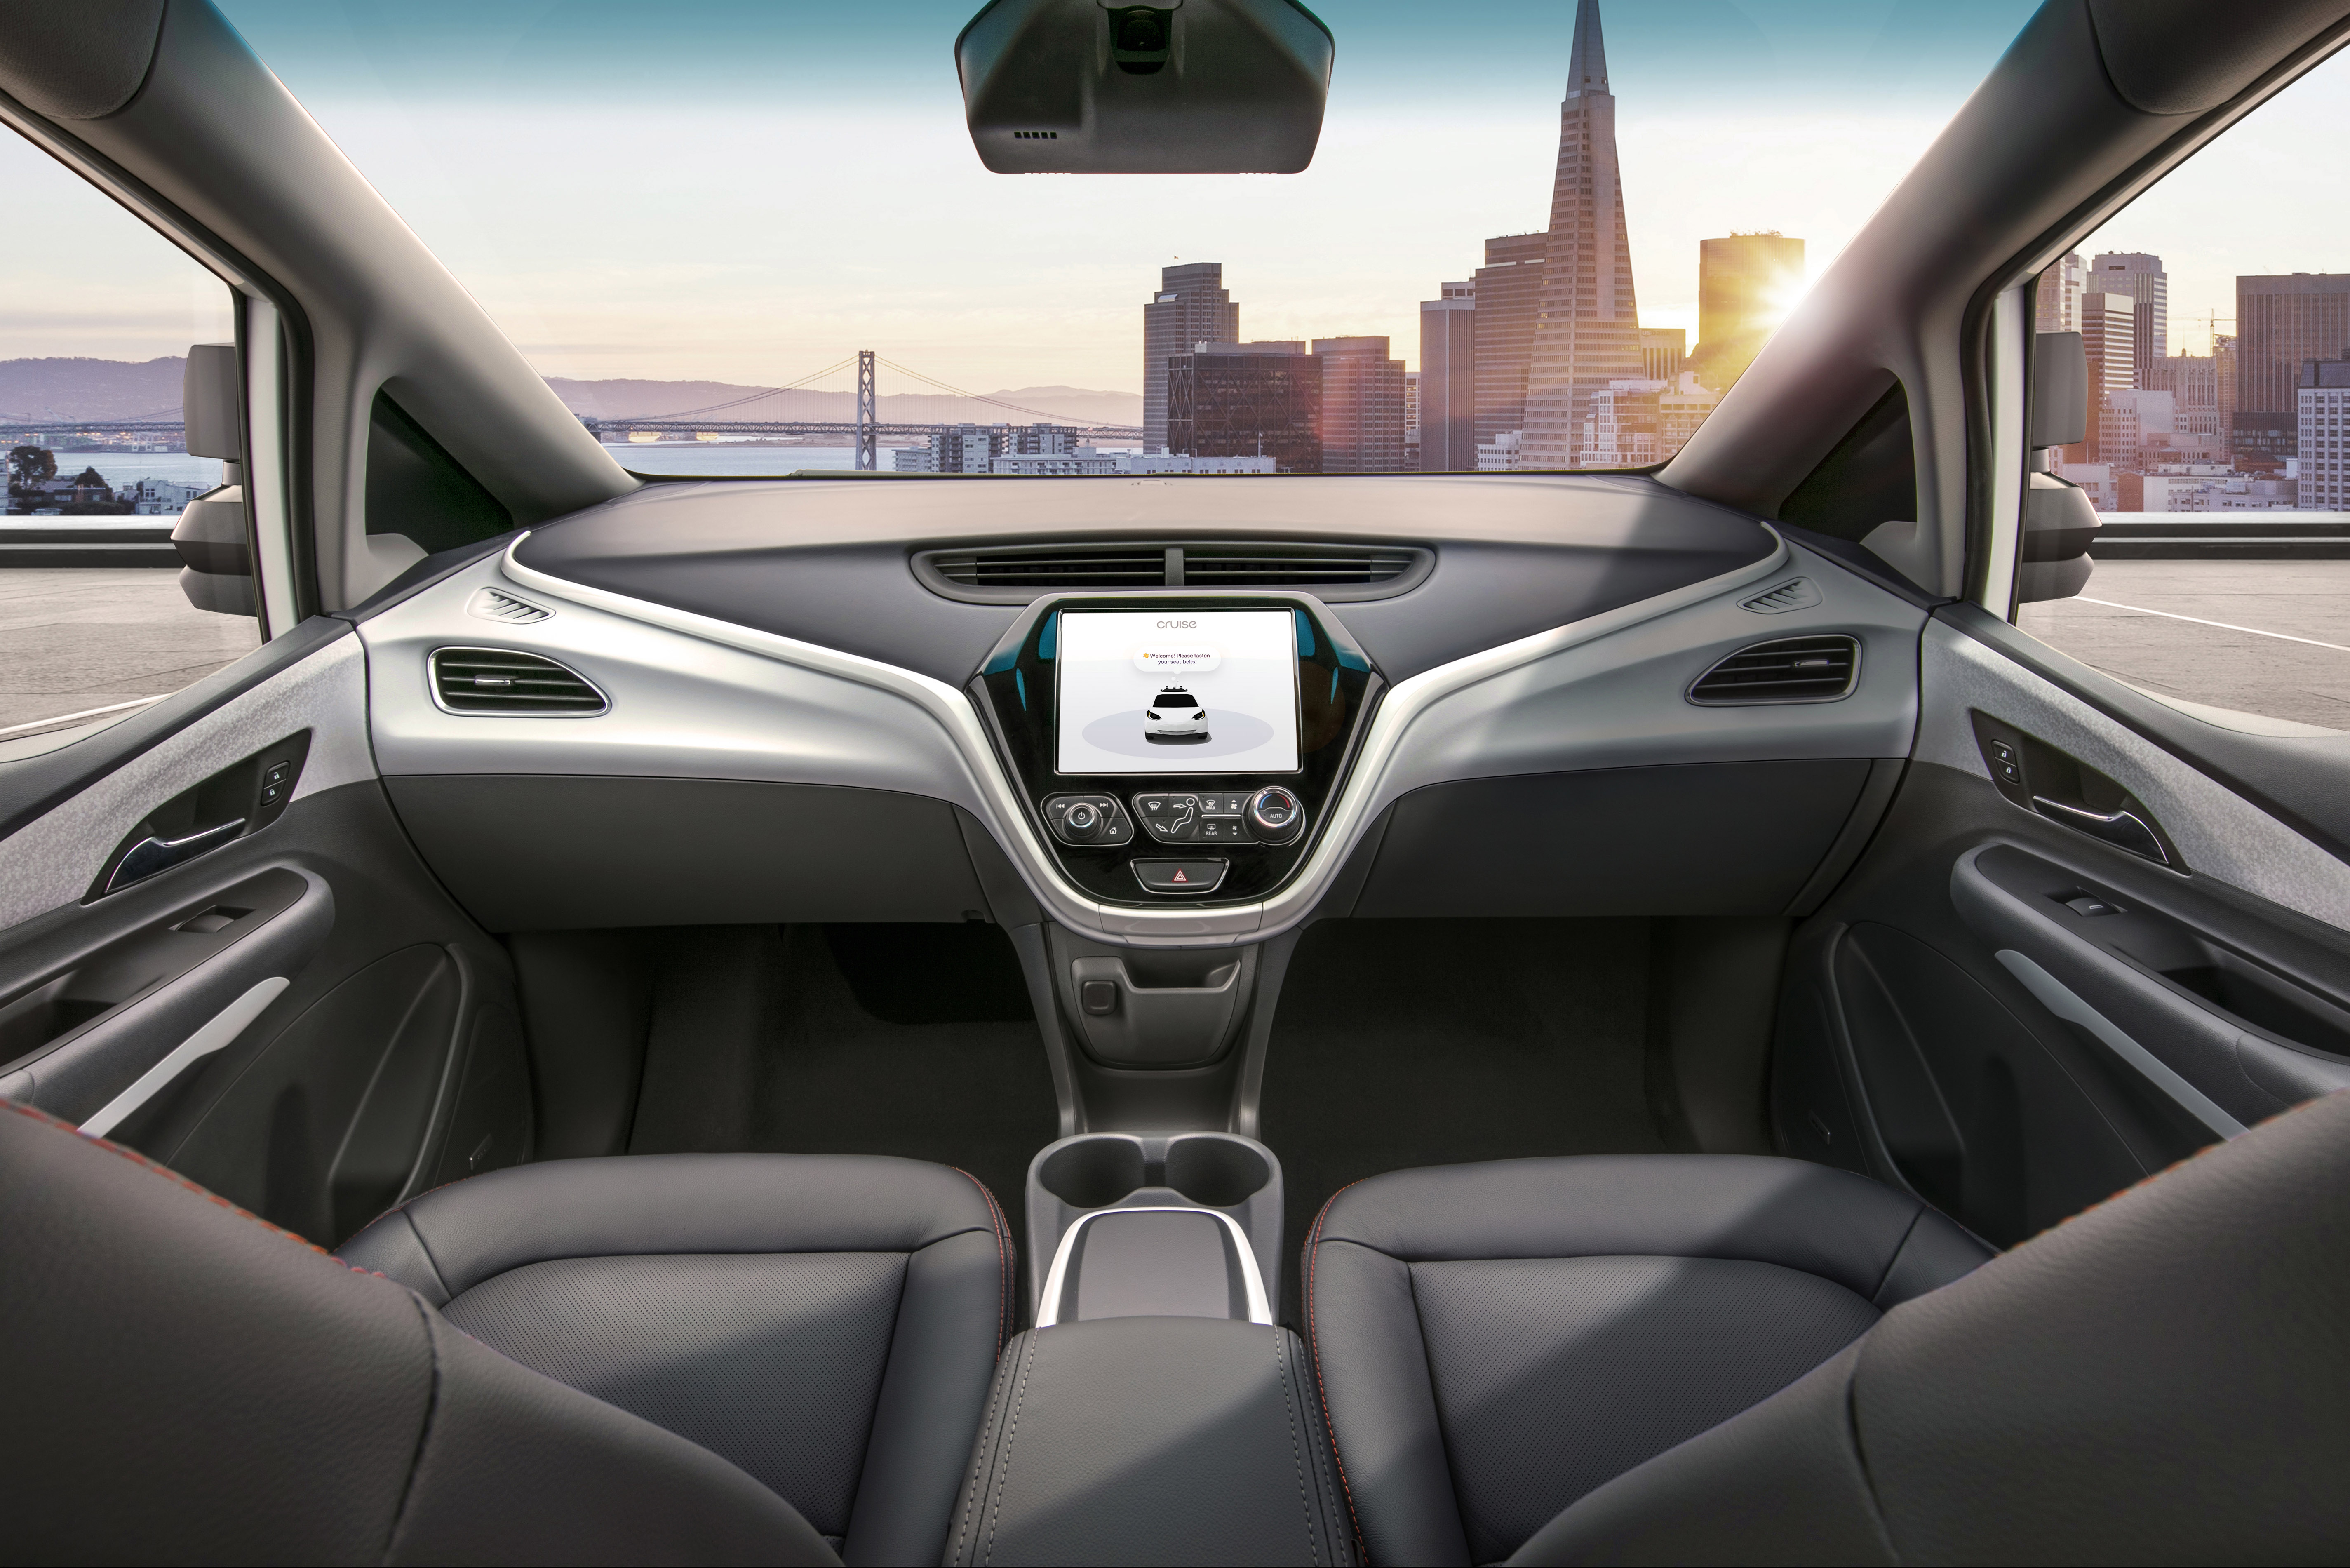 GM will build its production autonomous Cruise cars at Michigan assembly plant